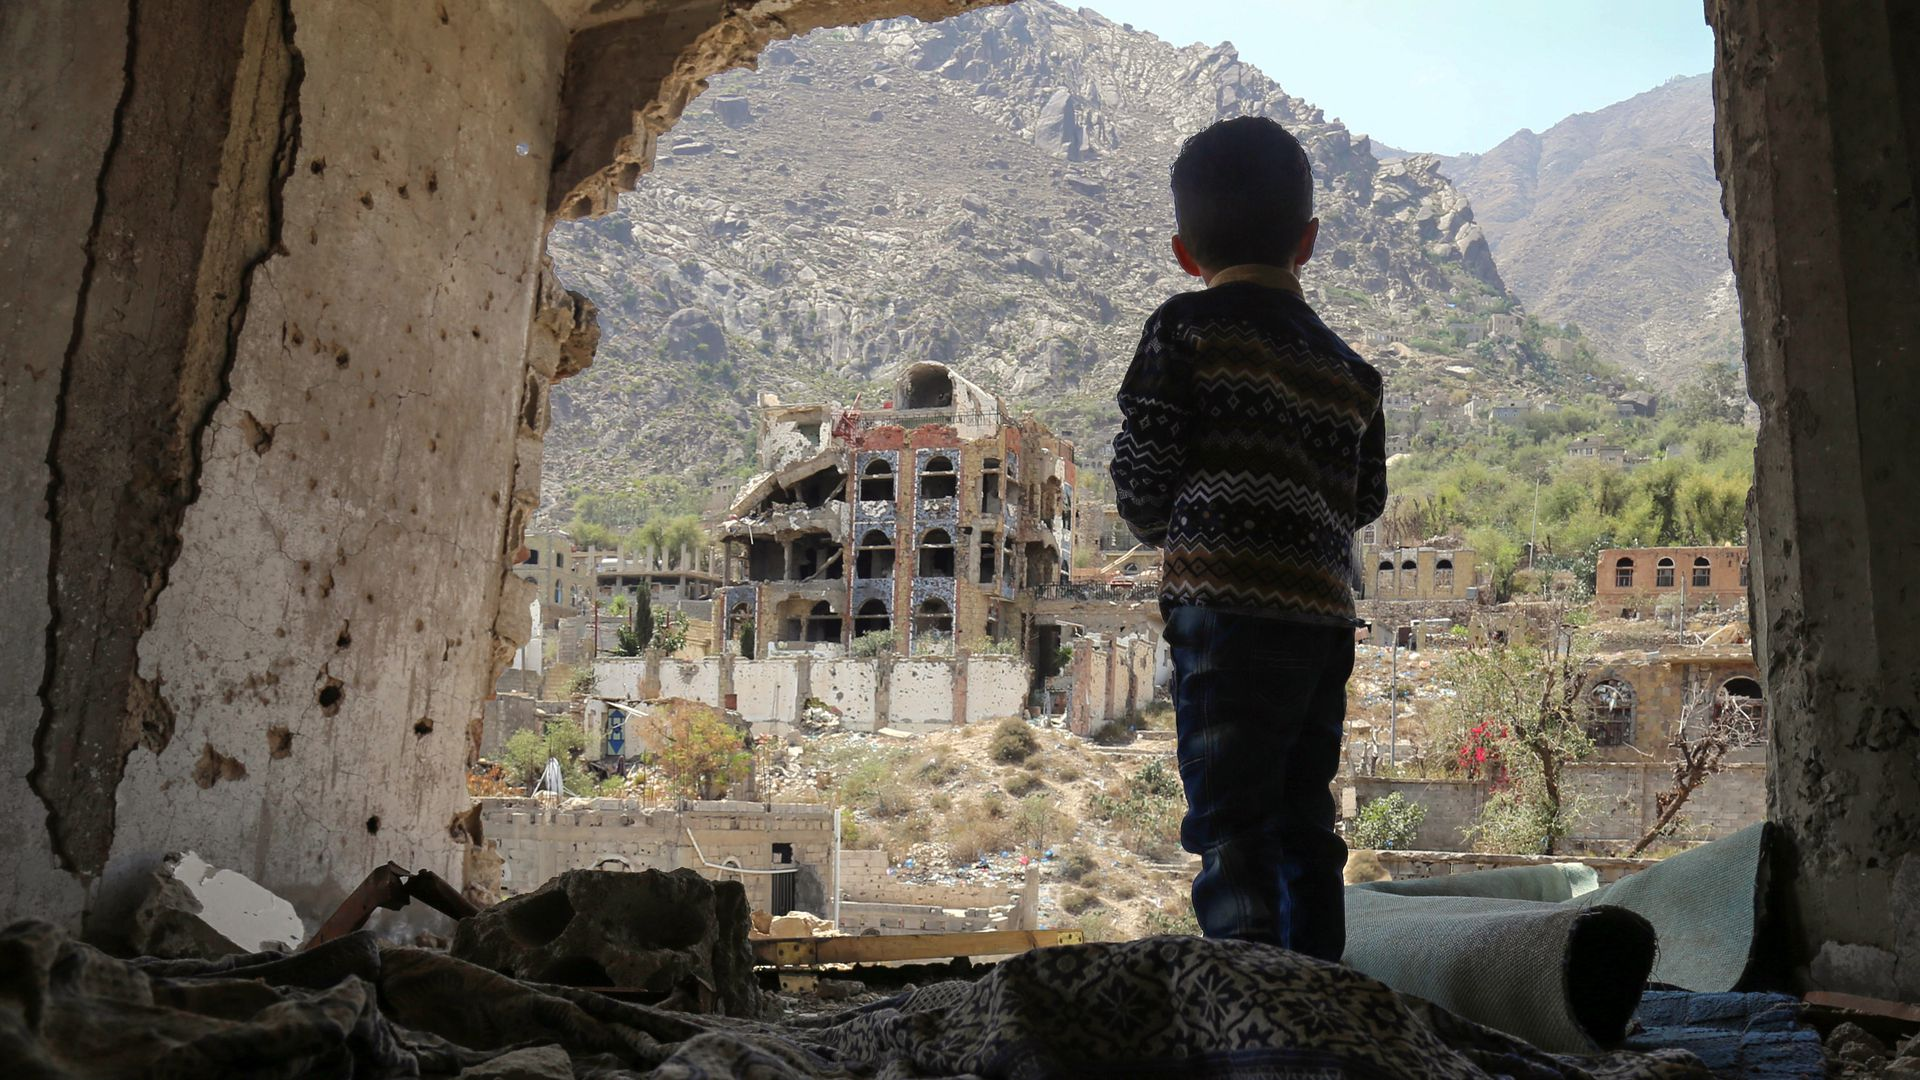 A child in Yemen looking at destroyed buildings.